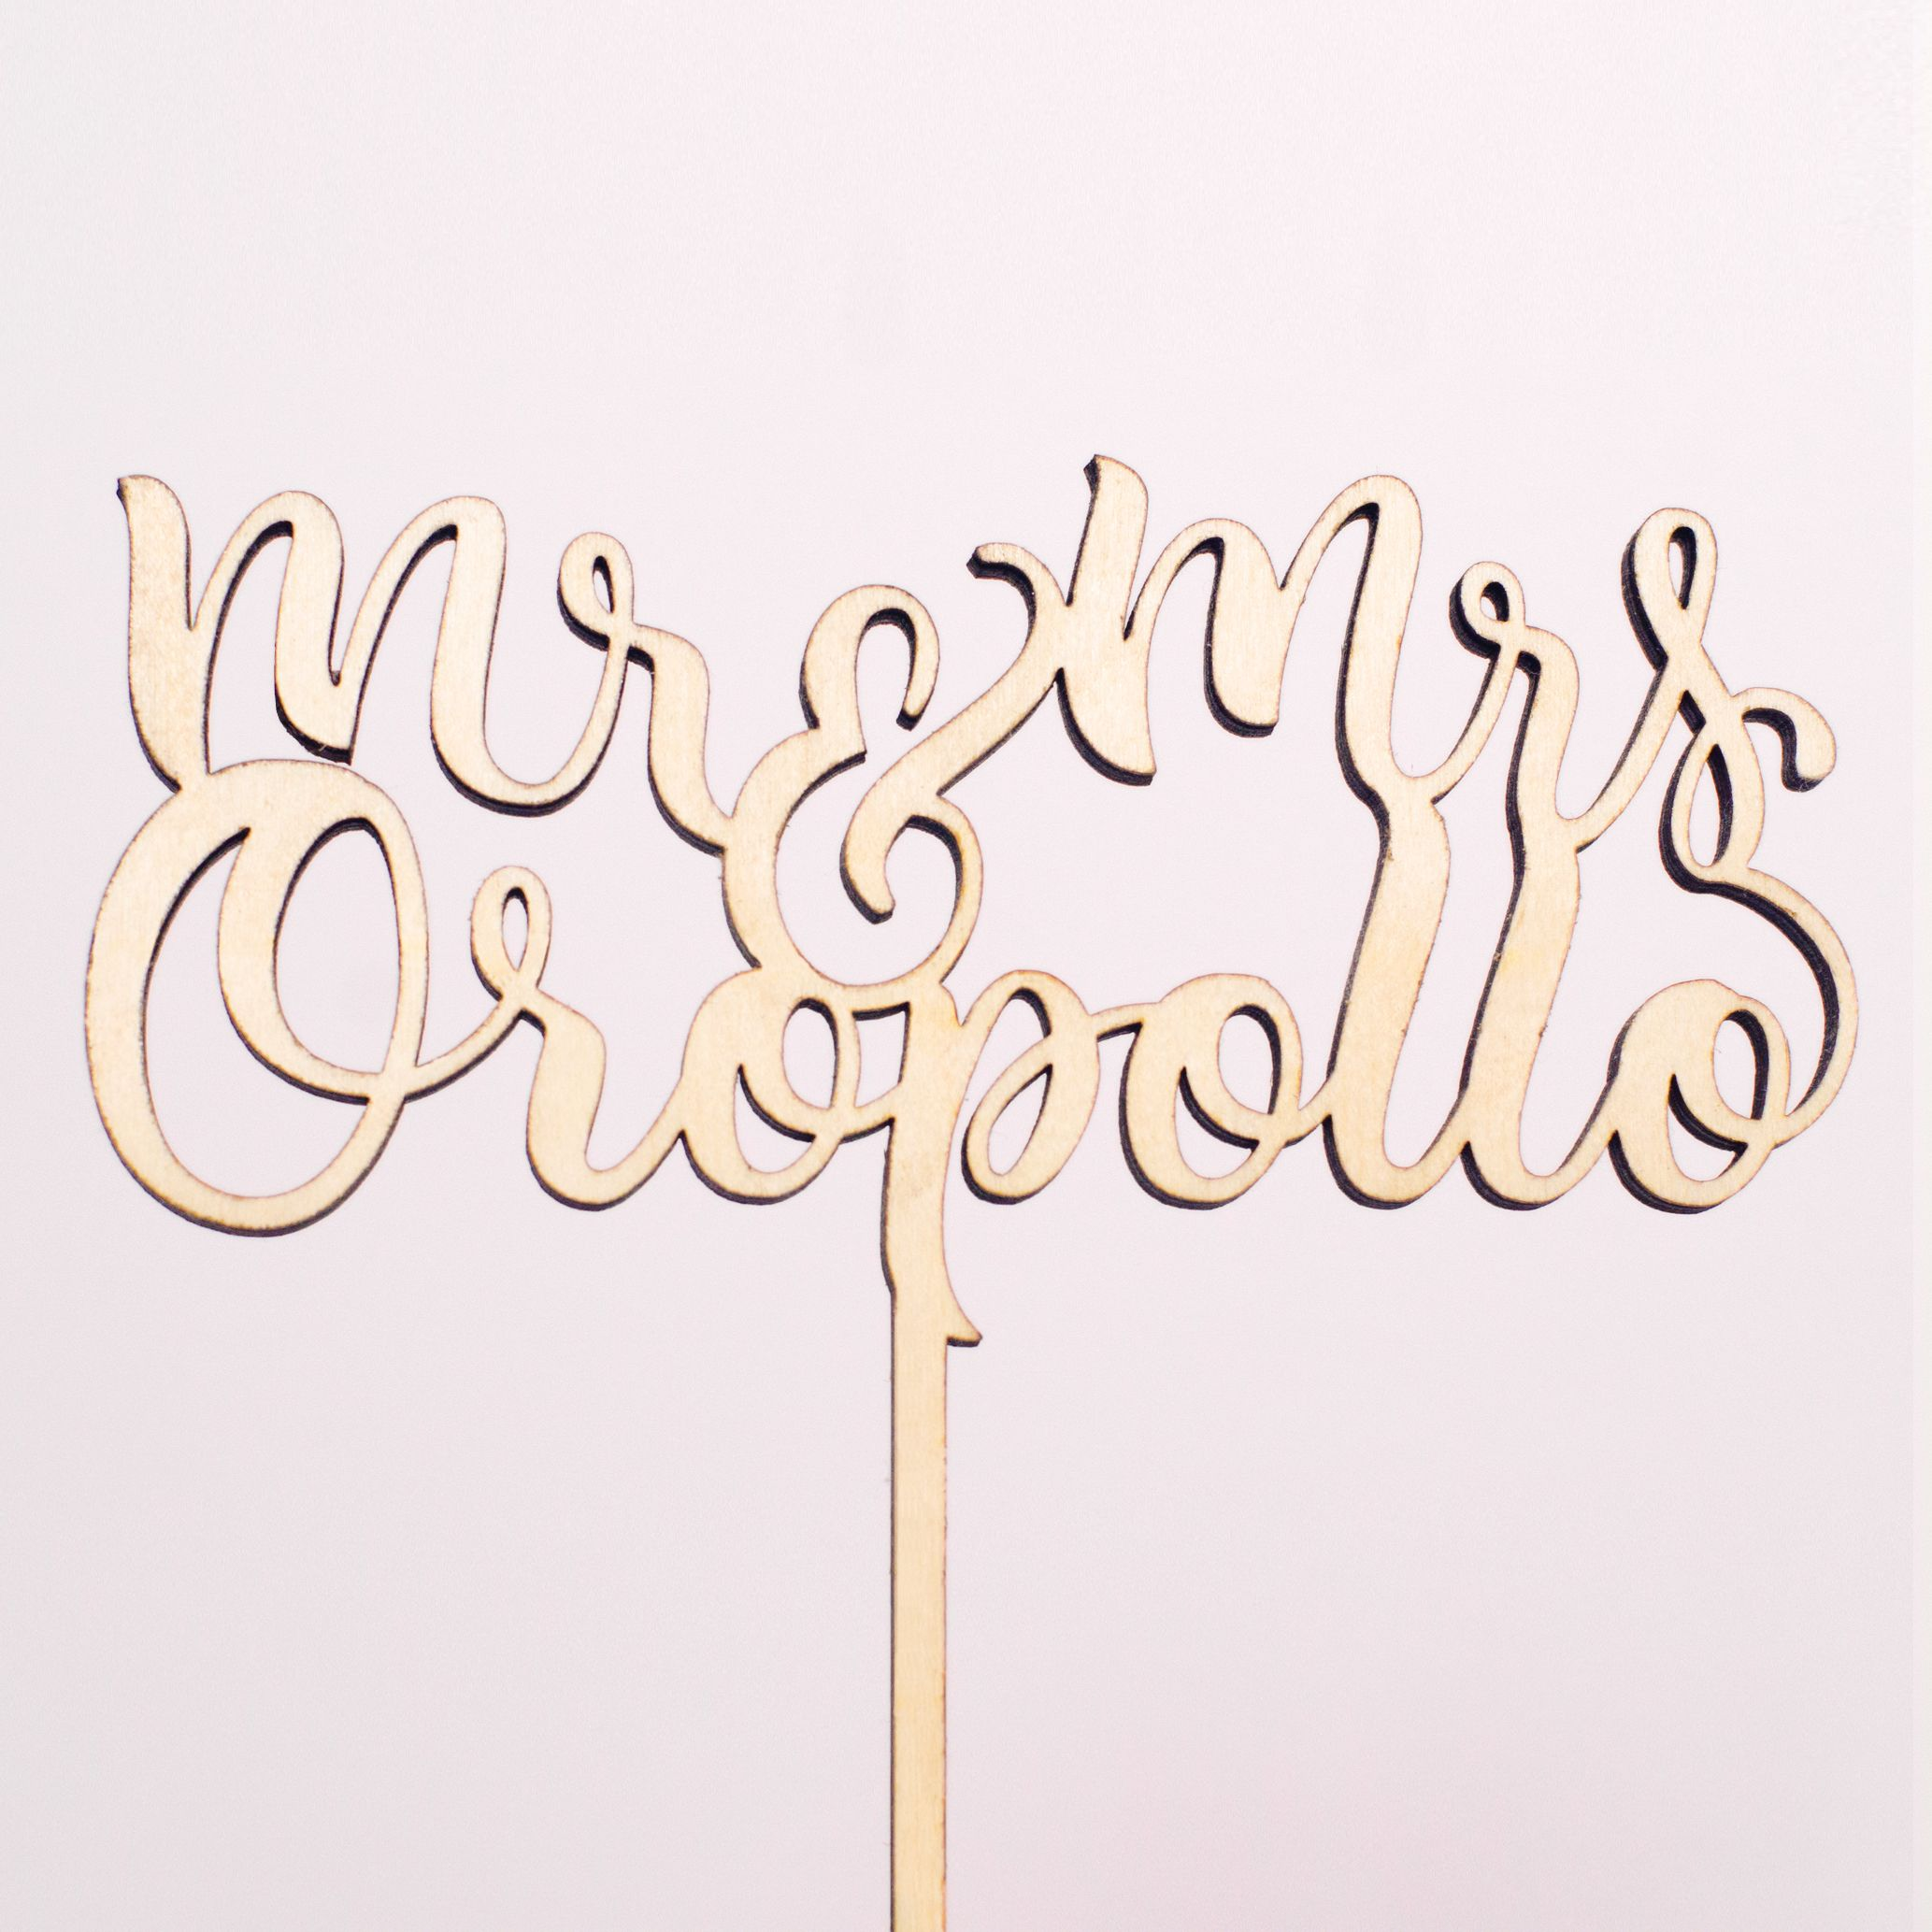 Customize your cake topper with your new last name caketopper